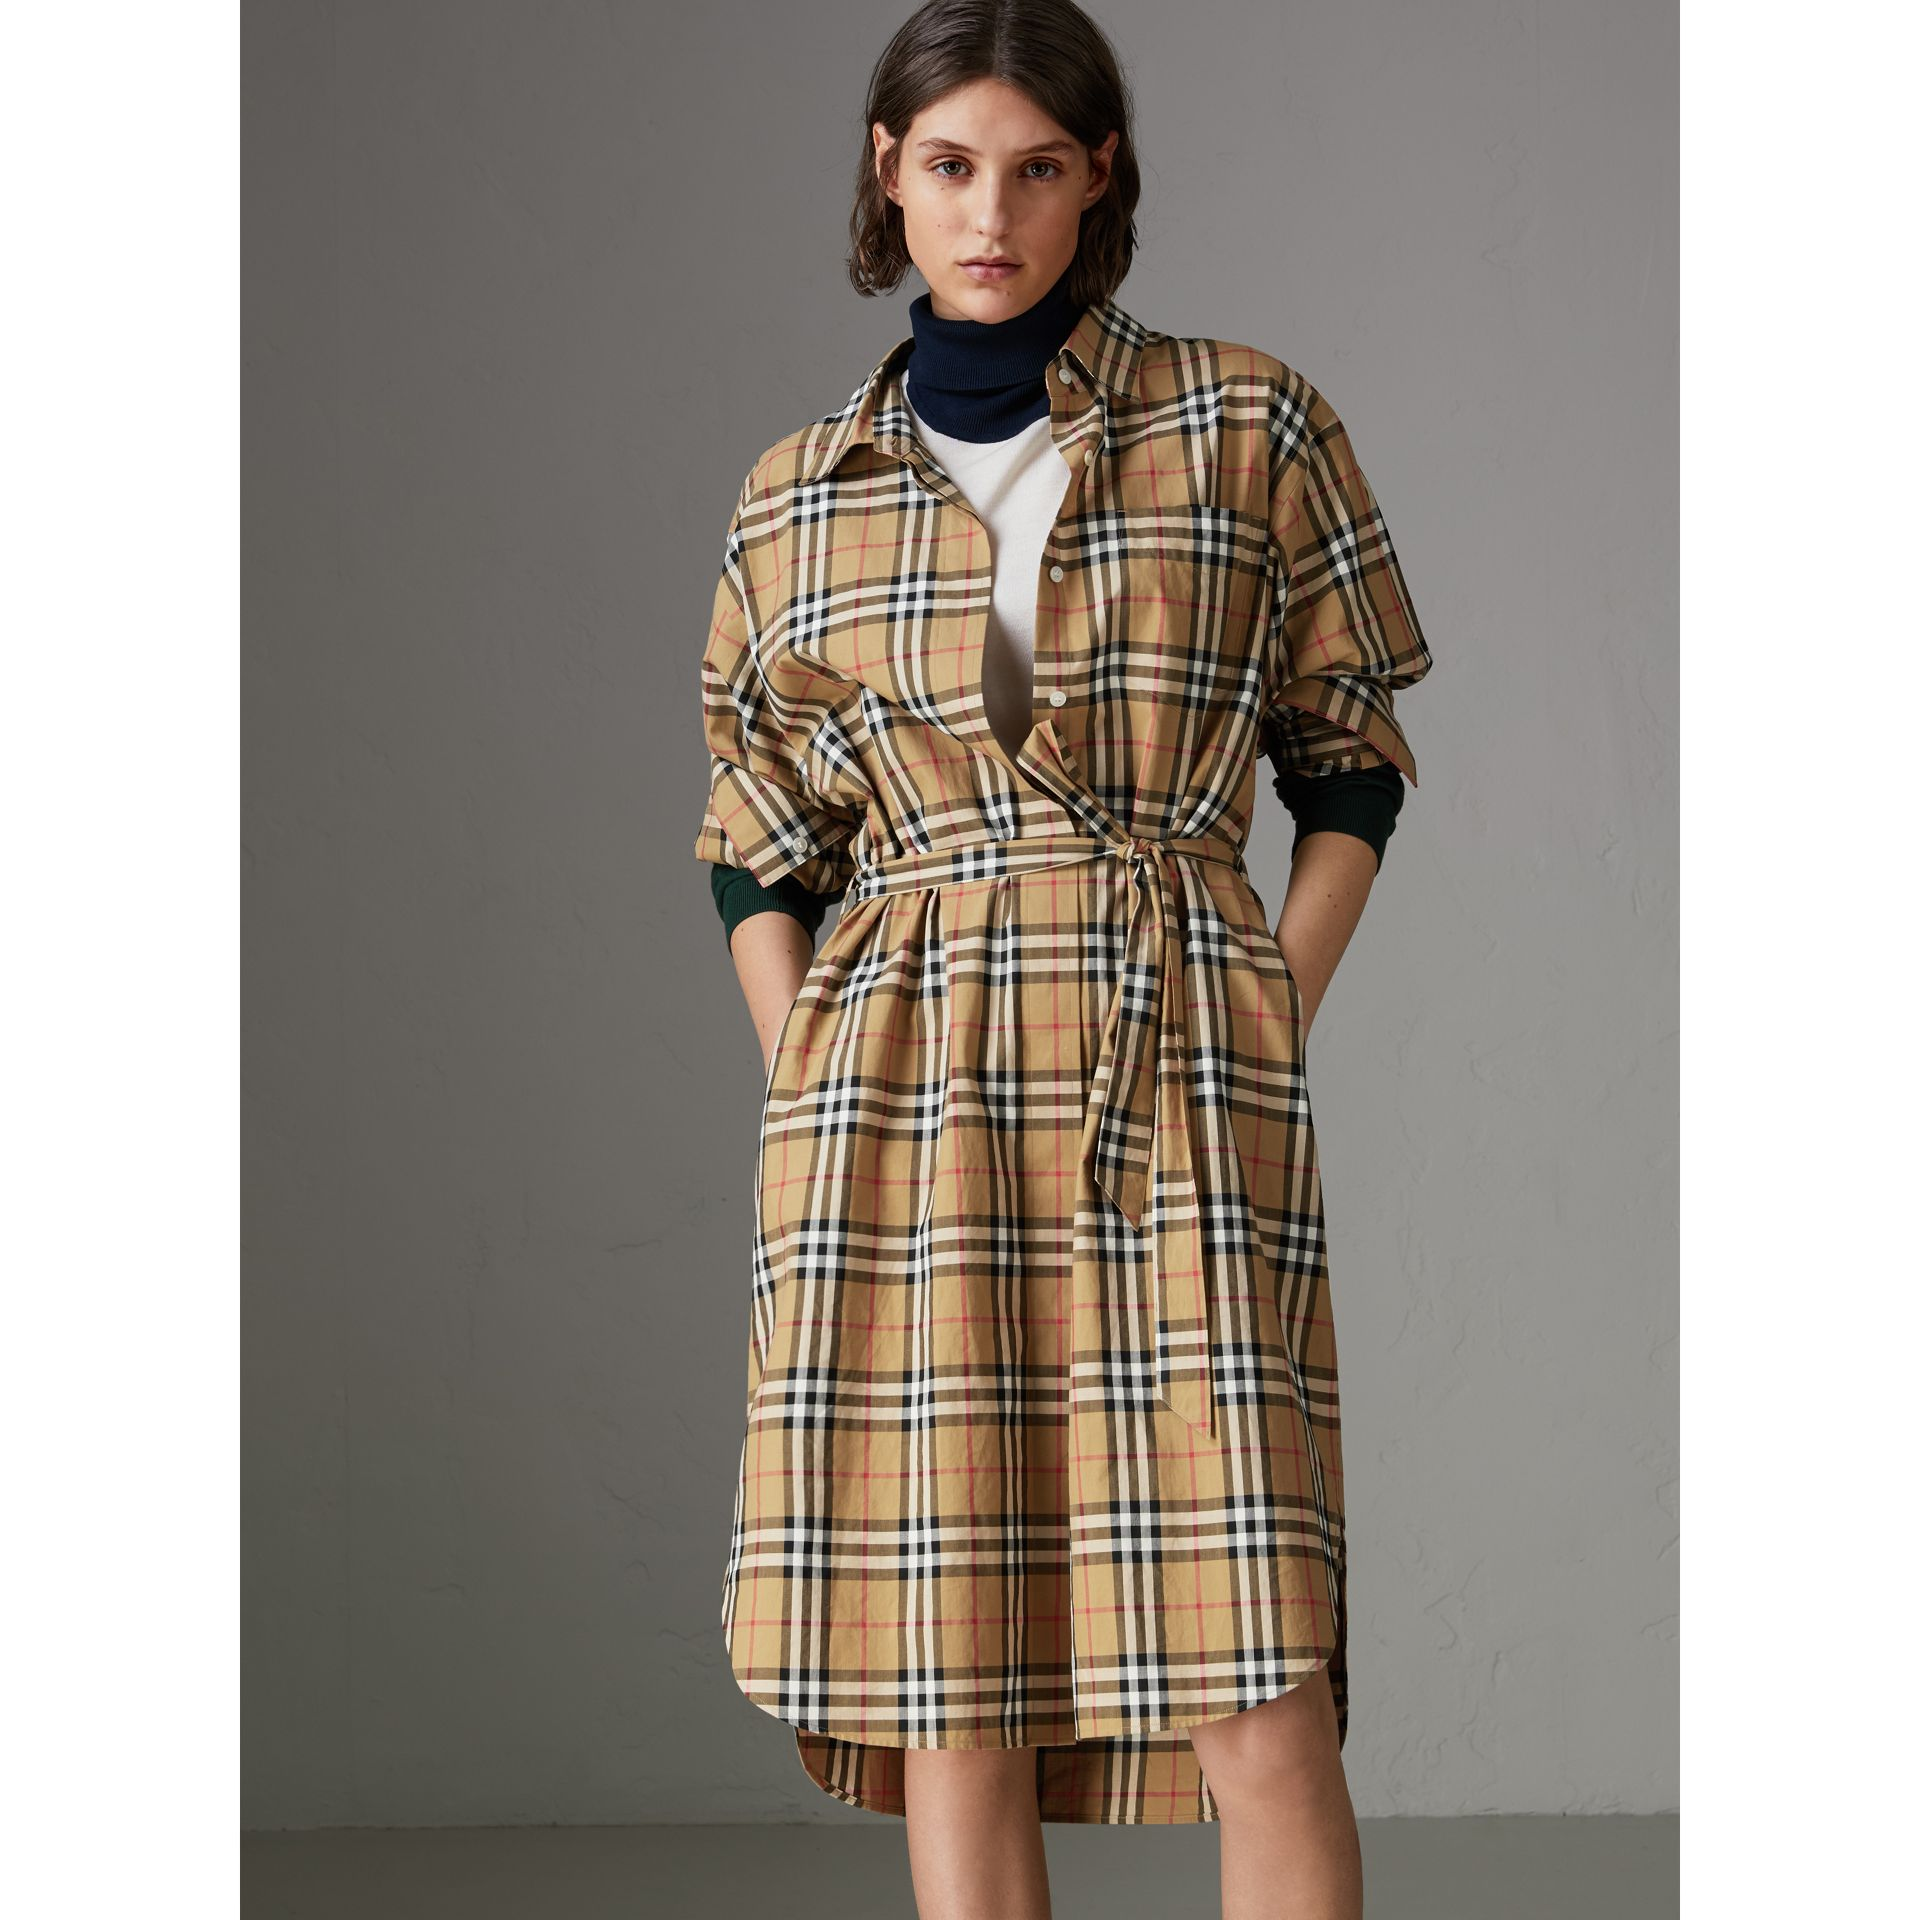 Tie-waist Vintage Check Cotton Shirt Dress in Antique Yellow - Women | Burberry - gallery image 4